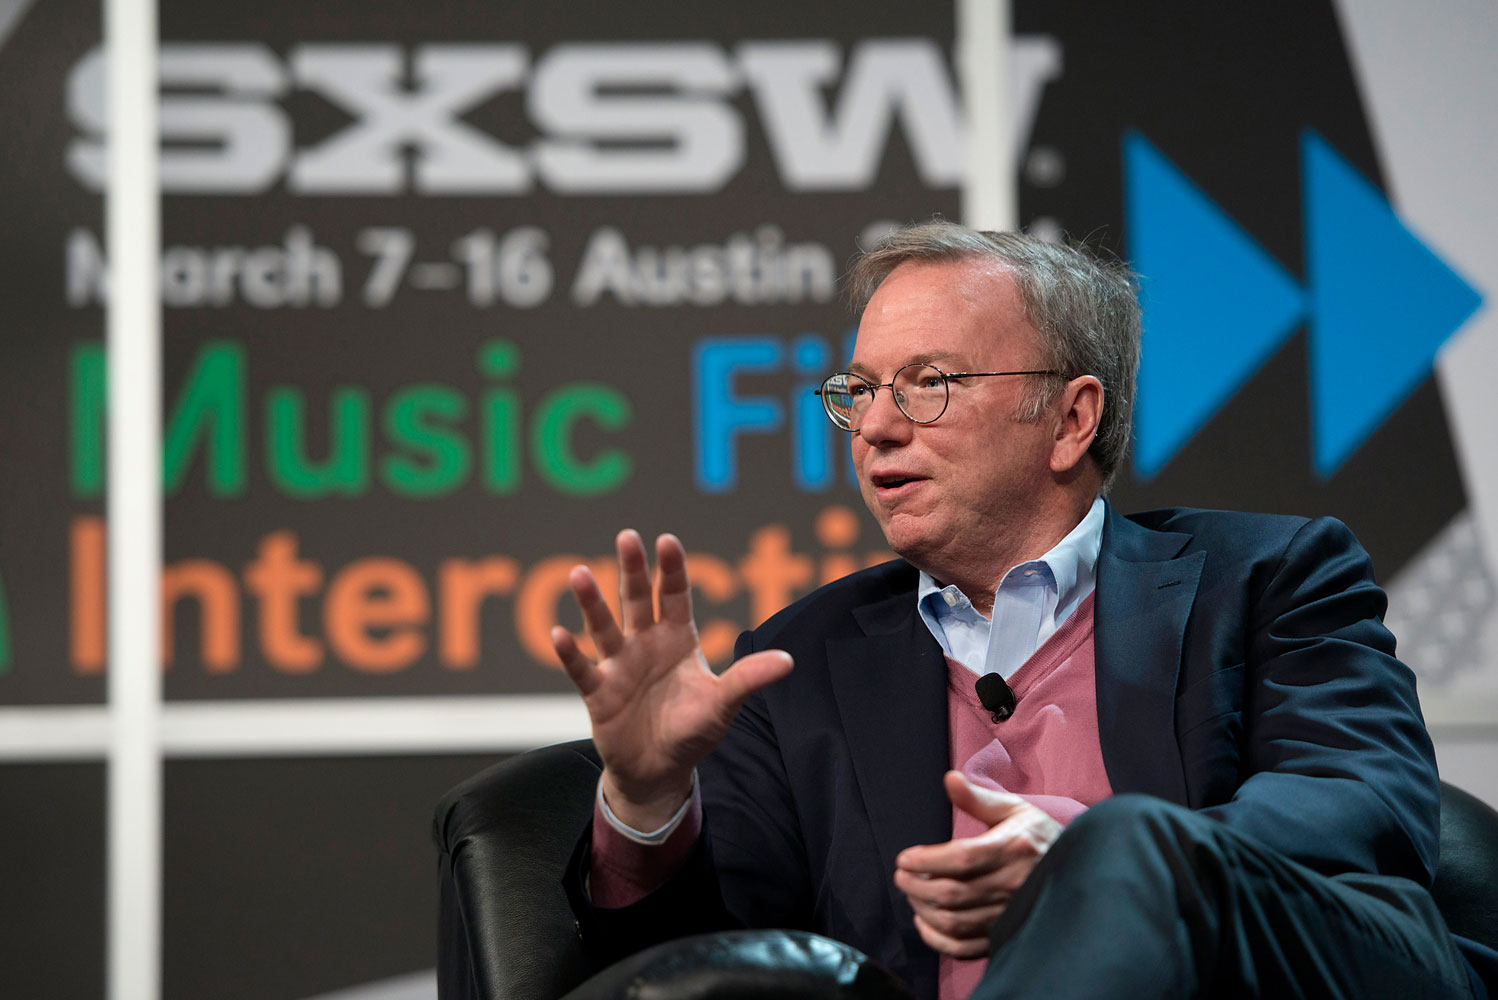 Eric Schmidt, executive chairman of Google Inc., speaks during a featured session called The New Digital Age, at the South By Southwest Interactive Festival in Austin, Texas, March 7, 2014.